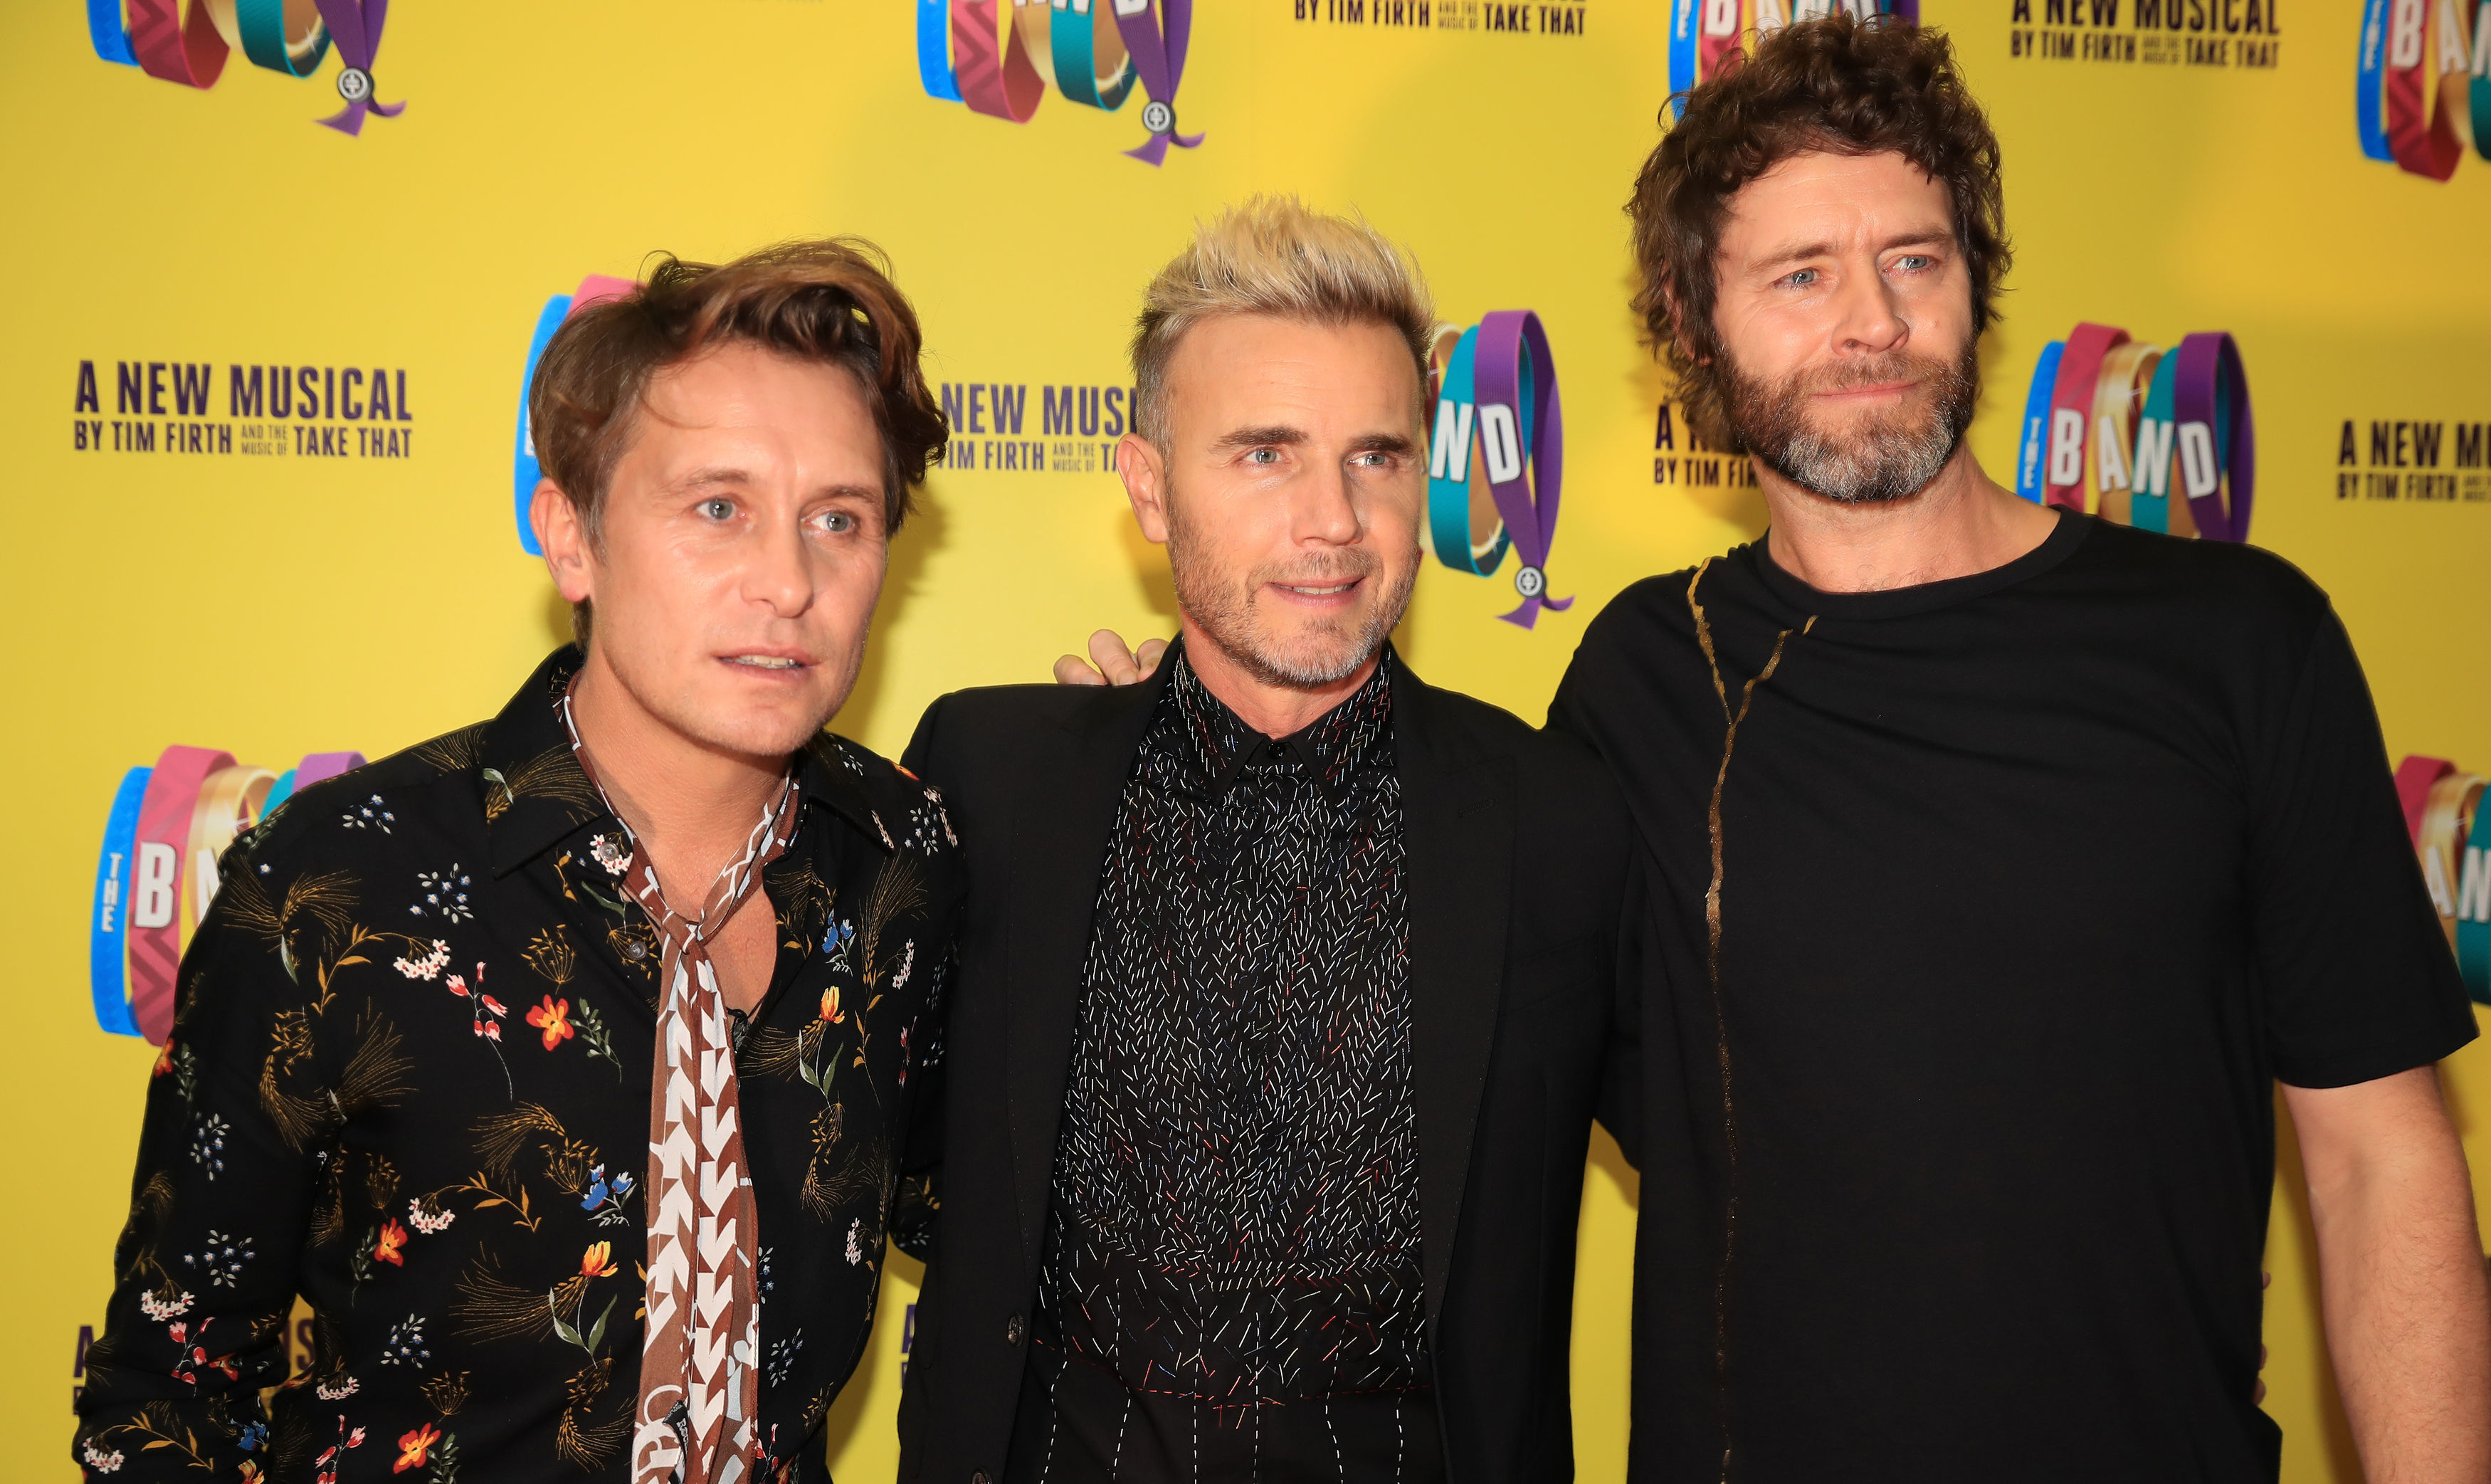 Take That begin touring in April